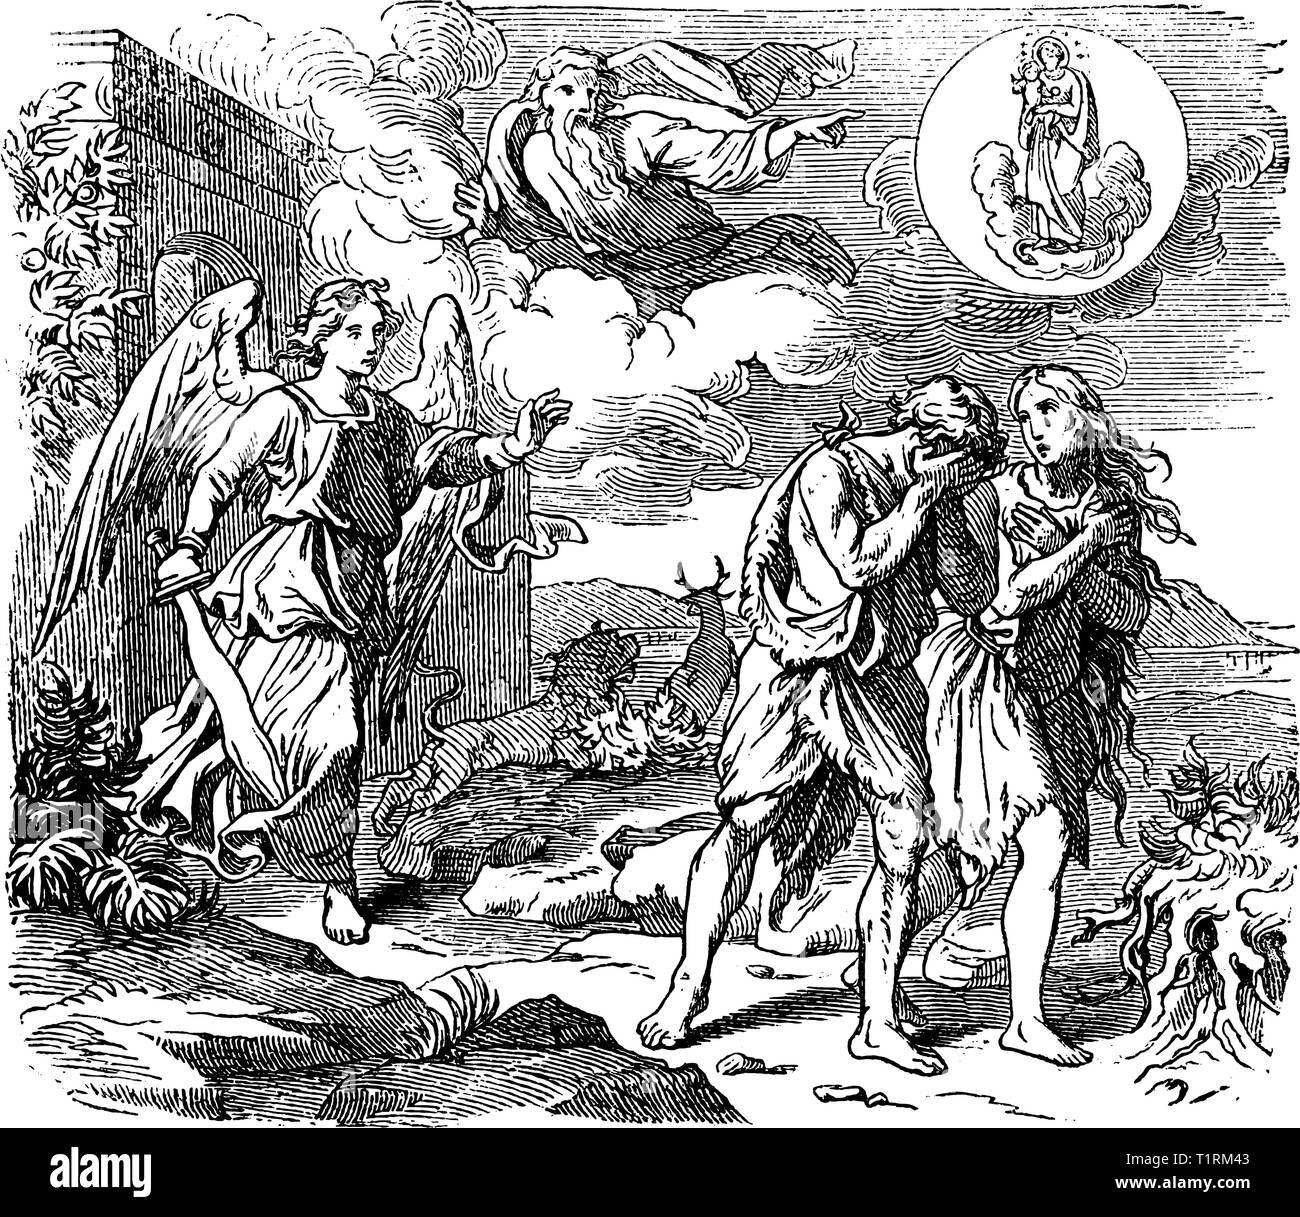 Vintage antique illustration and line drawing or engraving of biblical Adam and Eve leaving Garden of Eden. Expulsion from paradise by angel or cherubim with flaming sword.Genesis 3:24. - Stock Vector